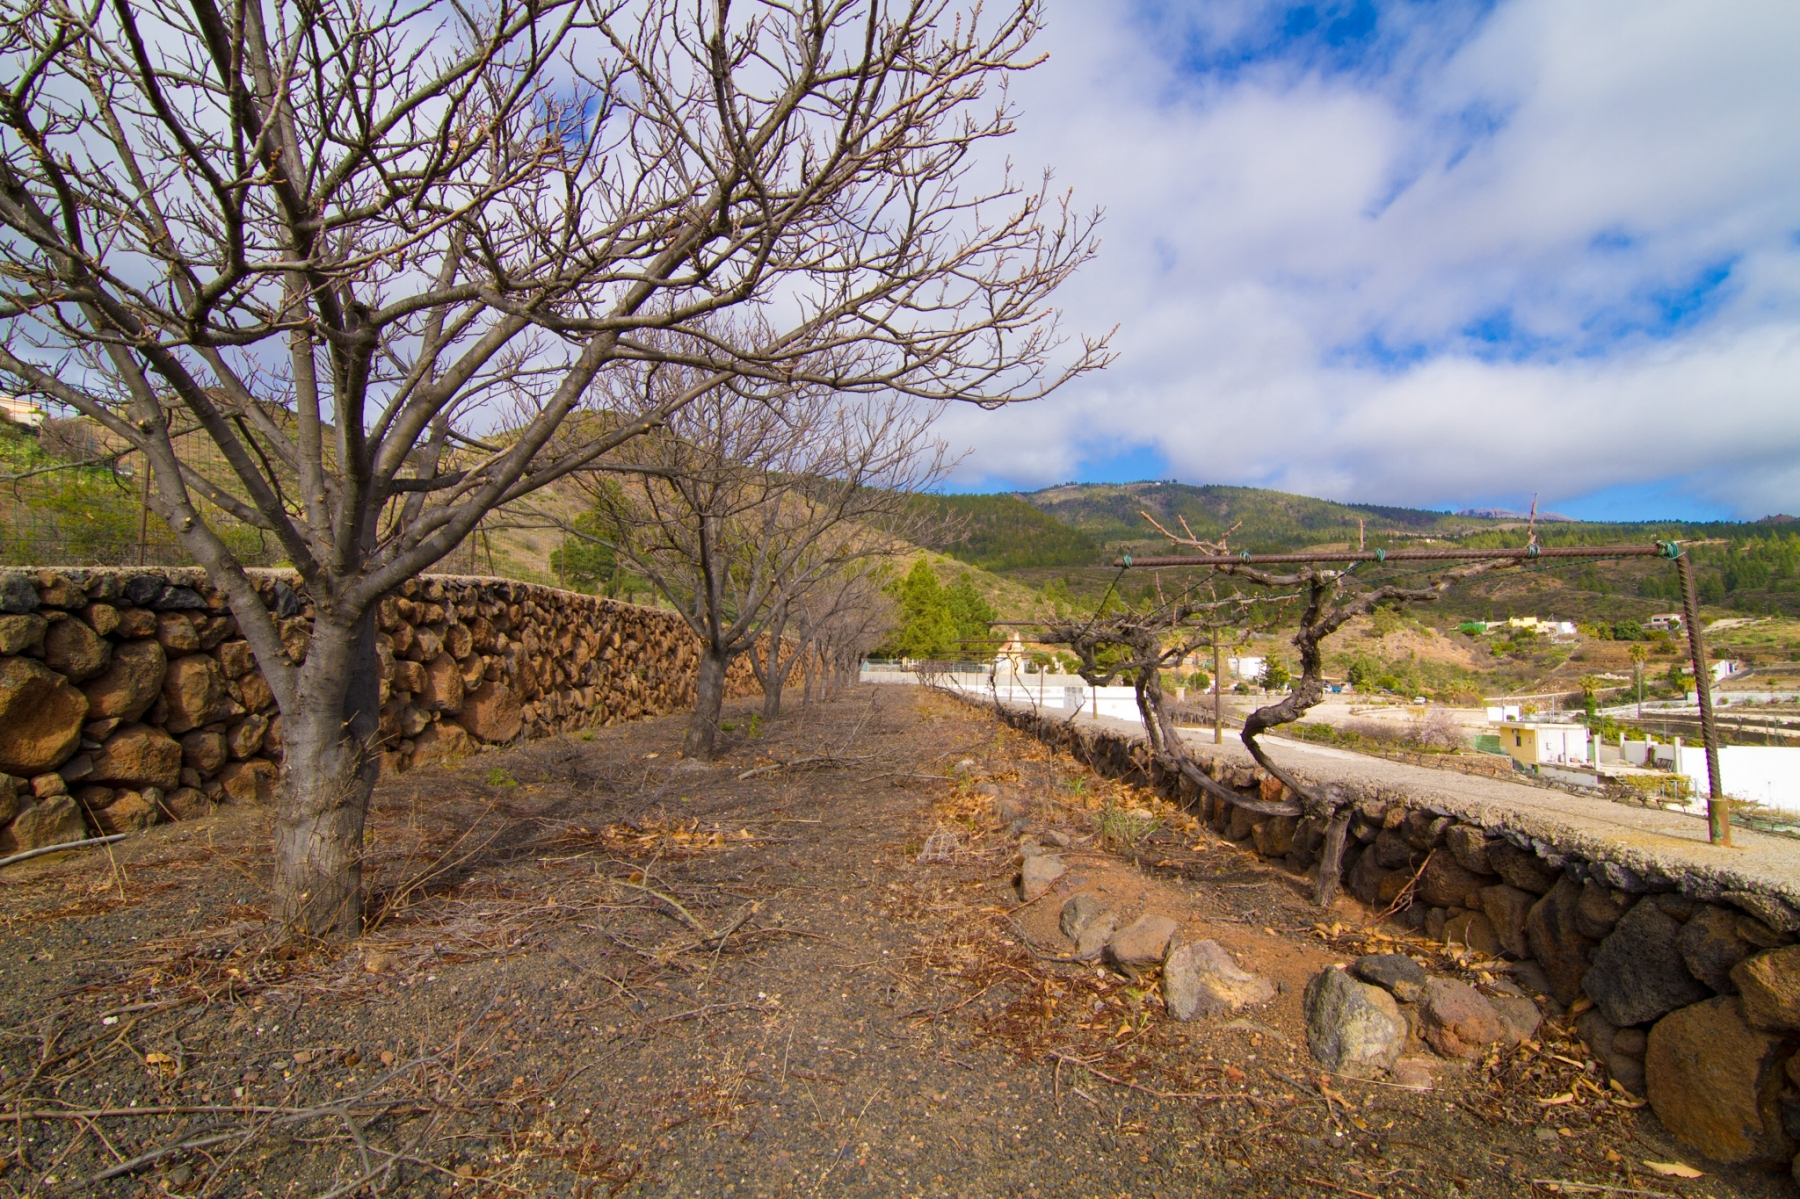 Properties for Sale in Tenerife, Canary Islands, Spain | SylkWayStar Real Estate. Finca with vineyard - Cruz de Tea - Granadilla de Abona . Image-21863